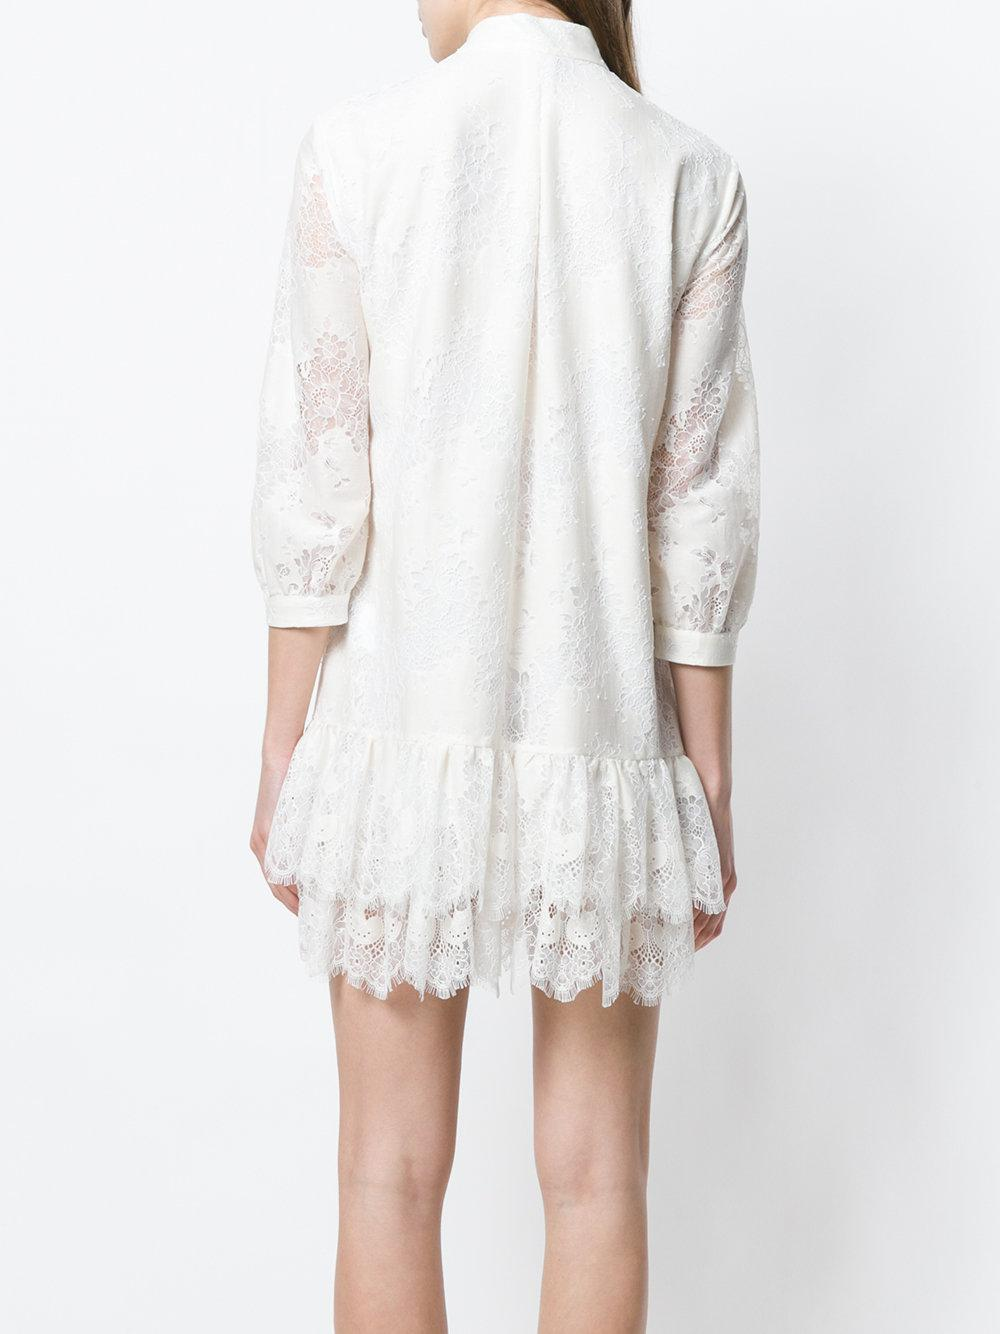 Clearance Footlocker Sale Store layered lace dress - Nude & Neutrals Just Cavalli Discount Codes Shopping Online Outlet Release Dates IrKa1